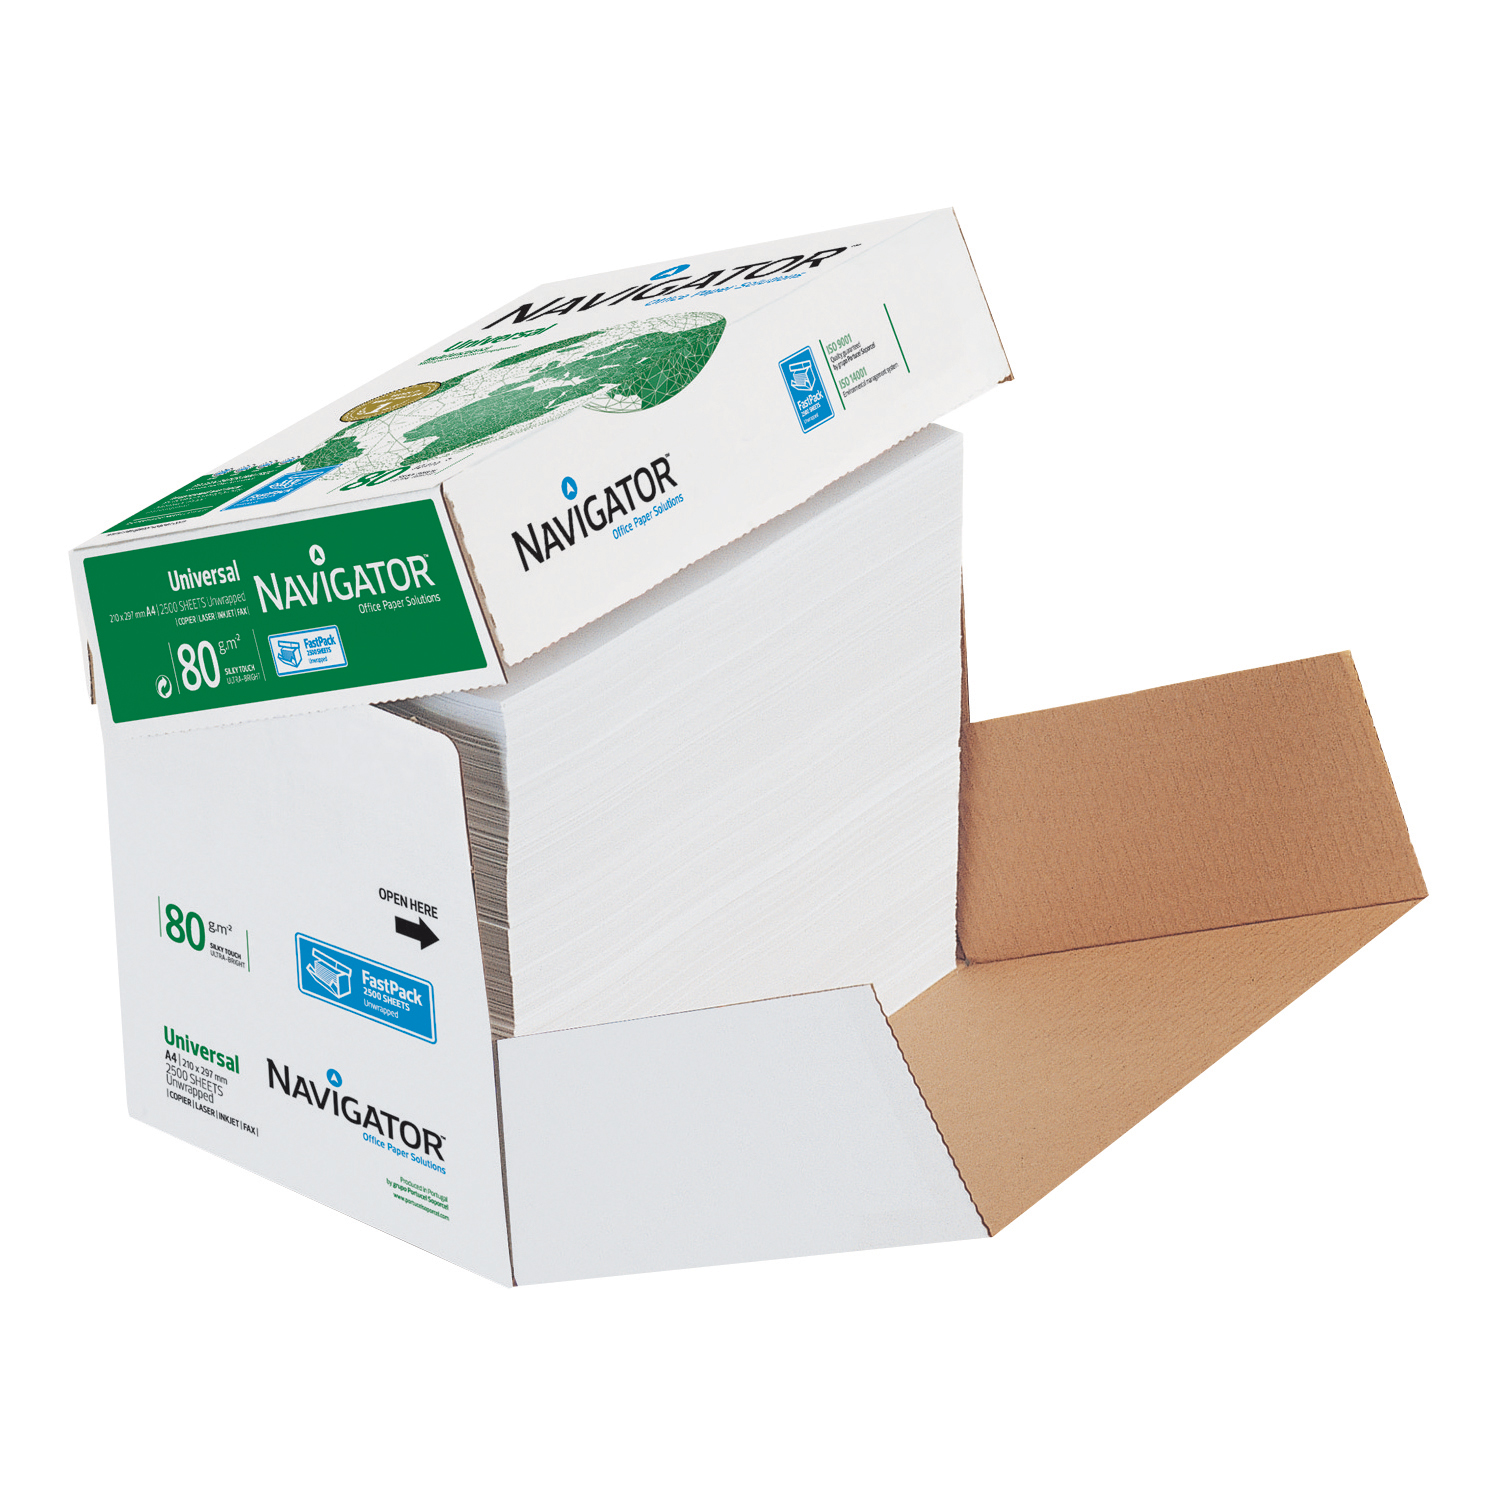 Navigator Universal Paper Multifunctional 80gsm A4 Fast Pack White Ref 127565 2500 Sheets